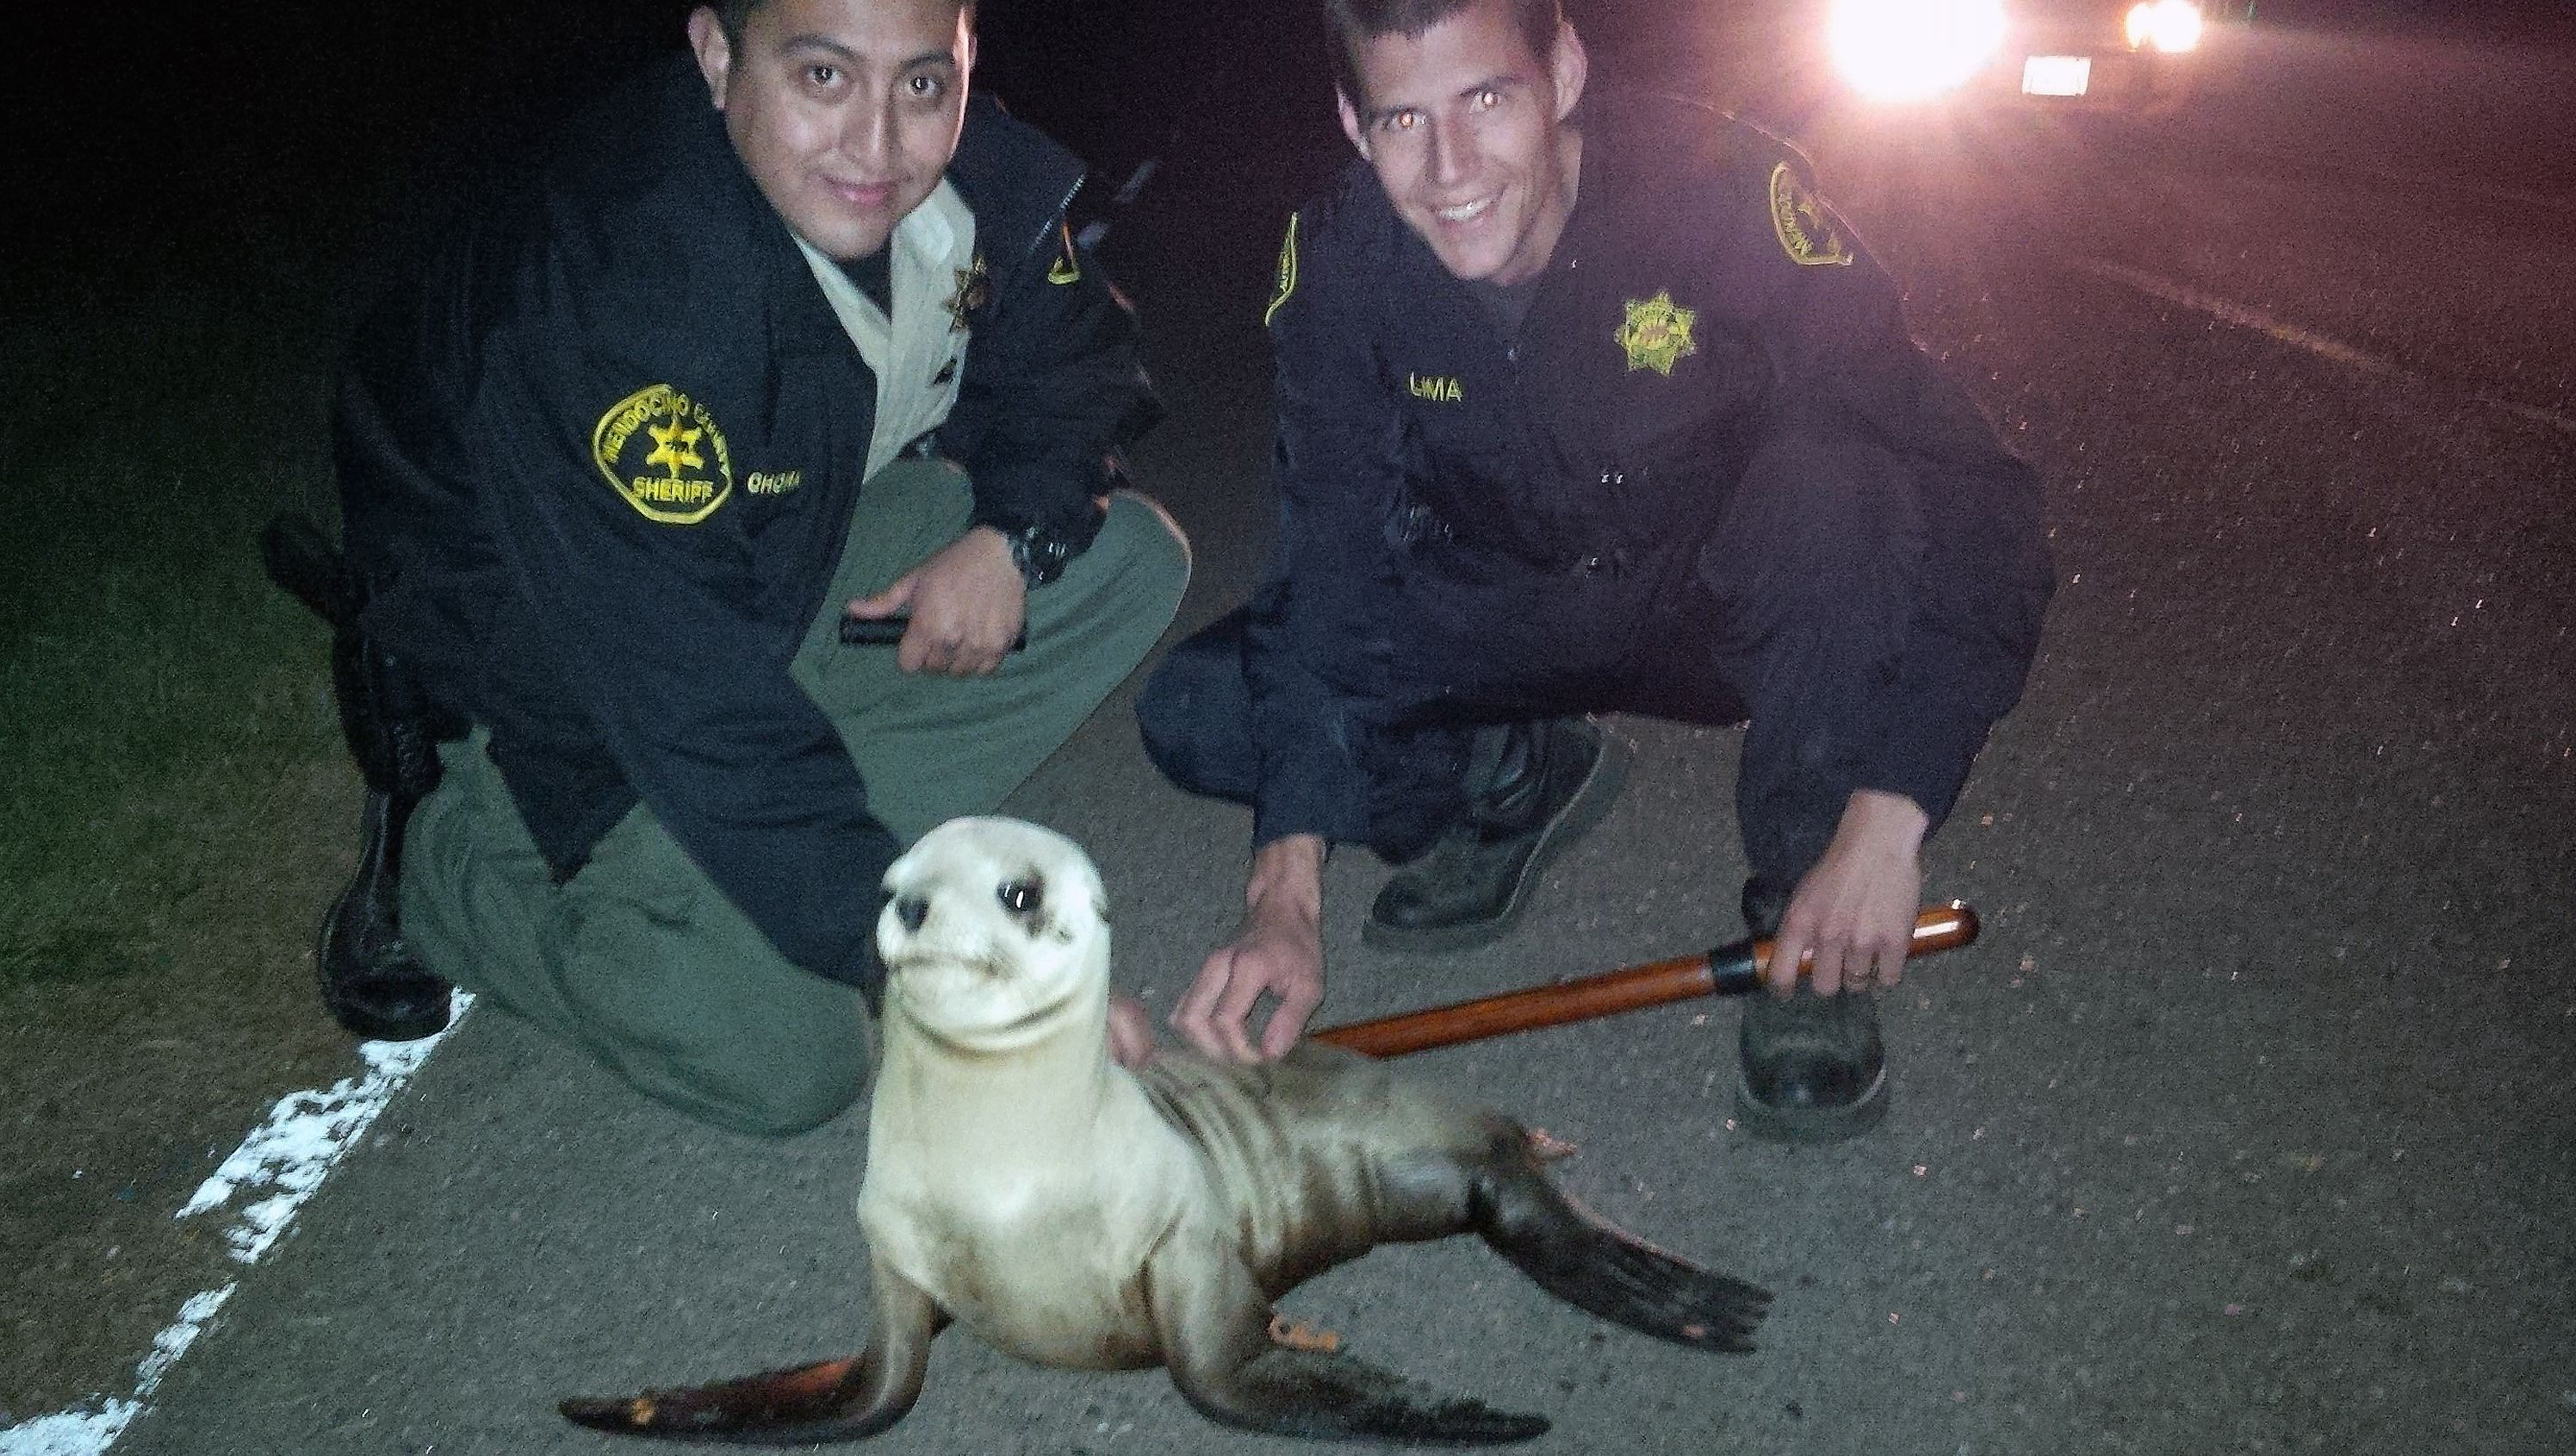 This April 19, 2015 photo provided by the Mendocino County Sheriff shows Mendocino County Deputy Sergio Chora-Alvarado, left and Deputy Ze Manuel Limaa, pose for a photo with a stranded Sea Lion pup. The rescued the sea lion pup waddled about a quarter-mile from the ocean. Mendocino County sheriff's deputies patrolling Highway 1, south of Fort Bragg, spotted the animal moving slowly in dark, dense fog on Sunday. They discovered the animal was a sea lion pup weighing about 20 pounds with a tag attached to its front flipper (Mendocino County Sheriff via AP